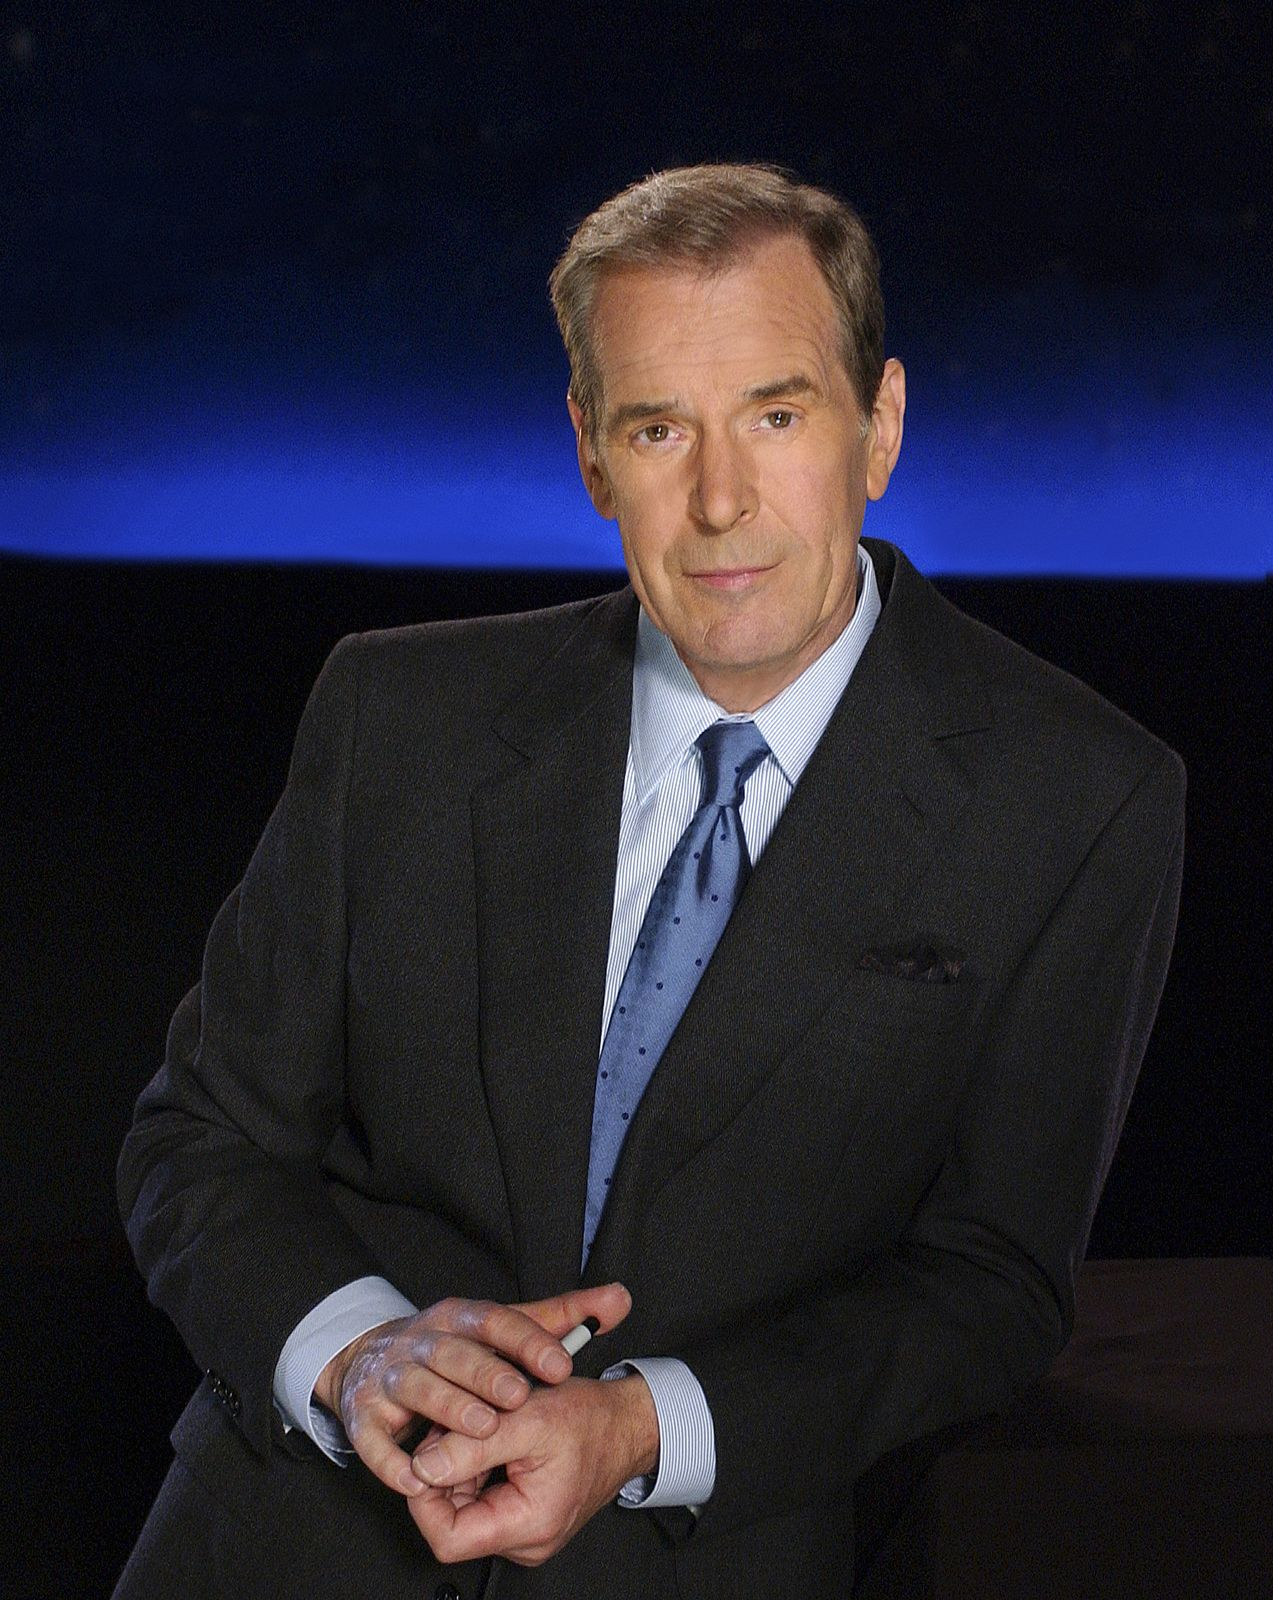 peter jennings | election coverage, people and famous people